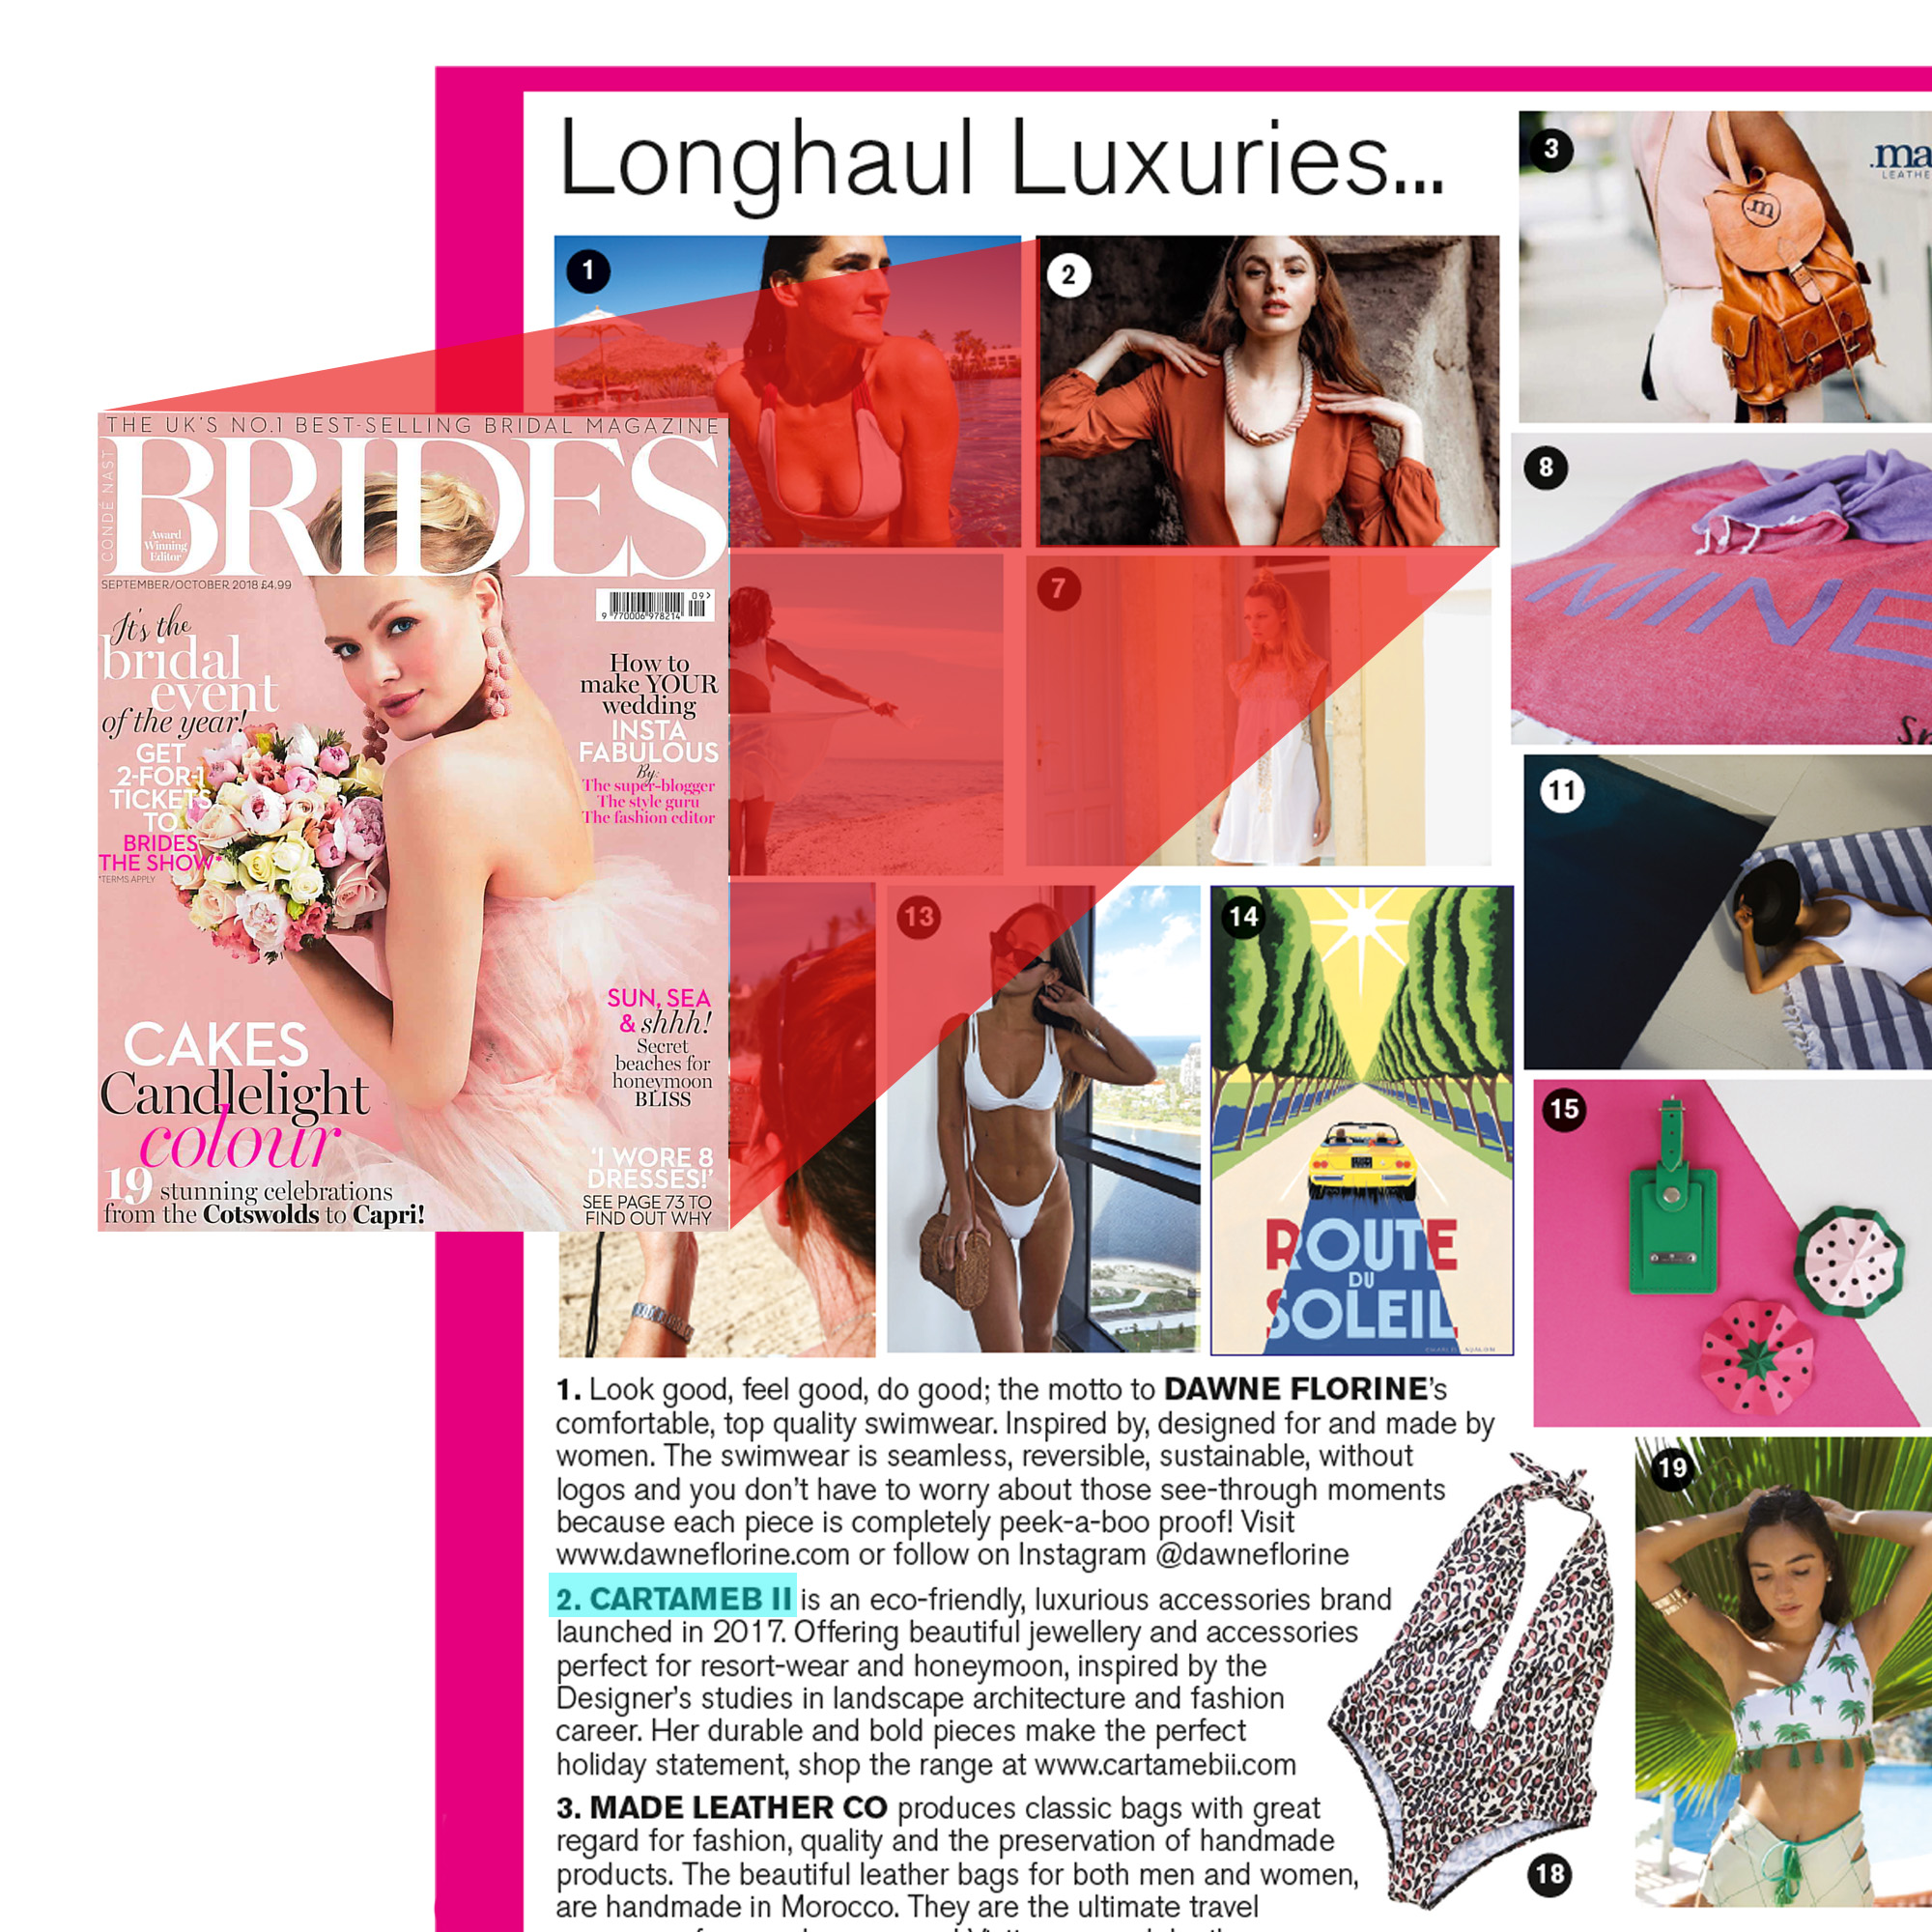 Brides UK Magazine   Longhaul Luxuries, Jewellery and Accessories for the Honeymoon featuring  Sunkissed Sky Necklace